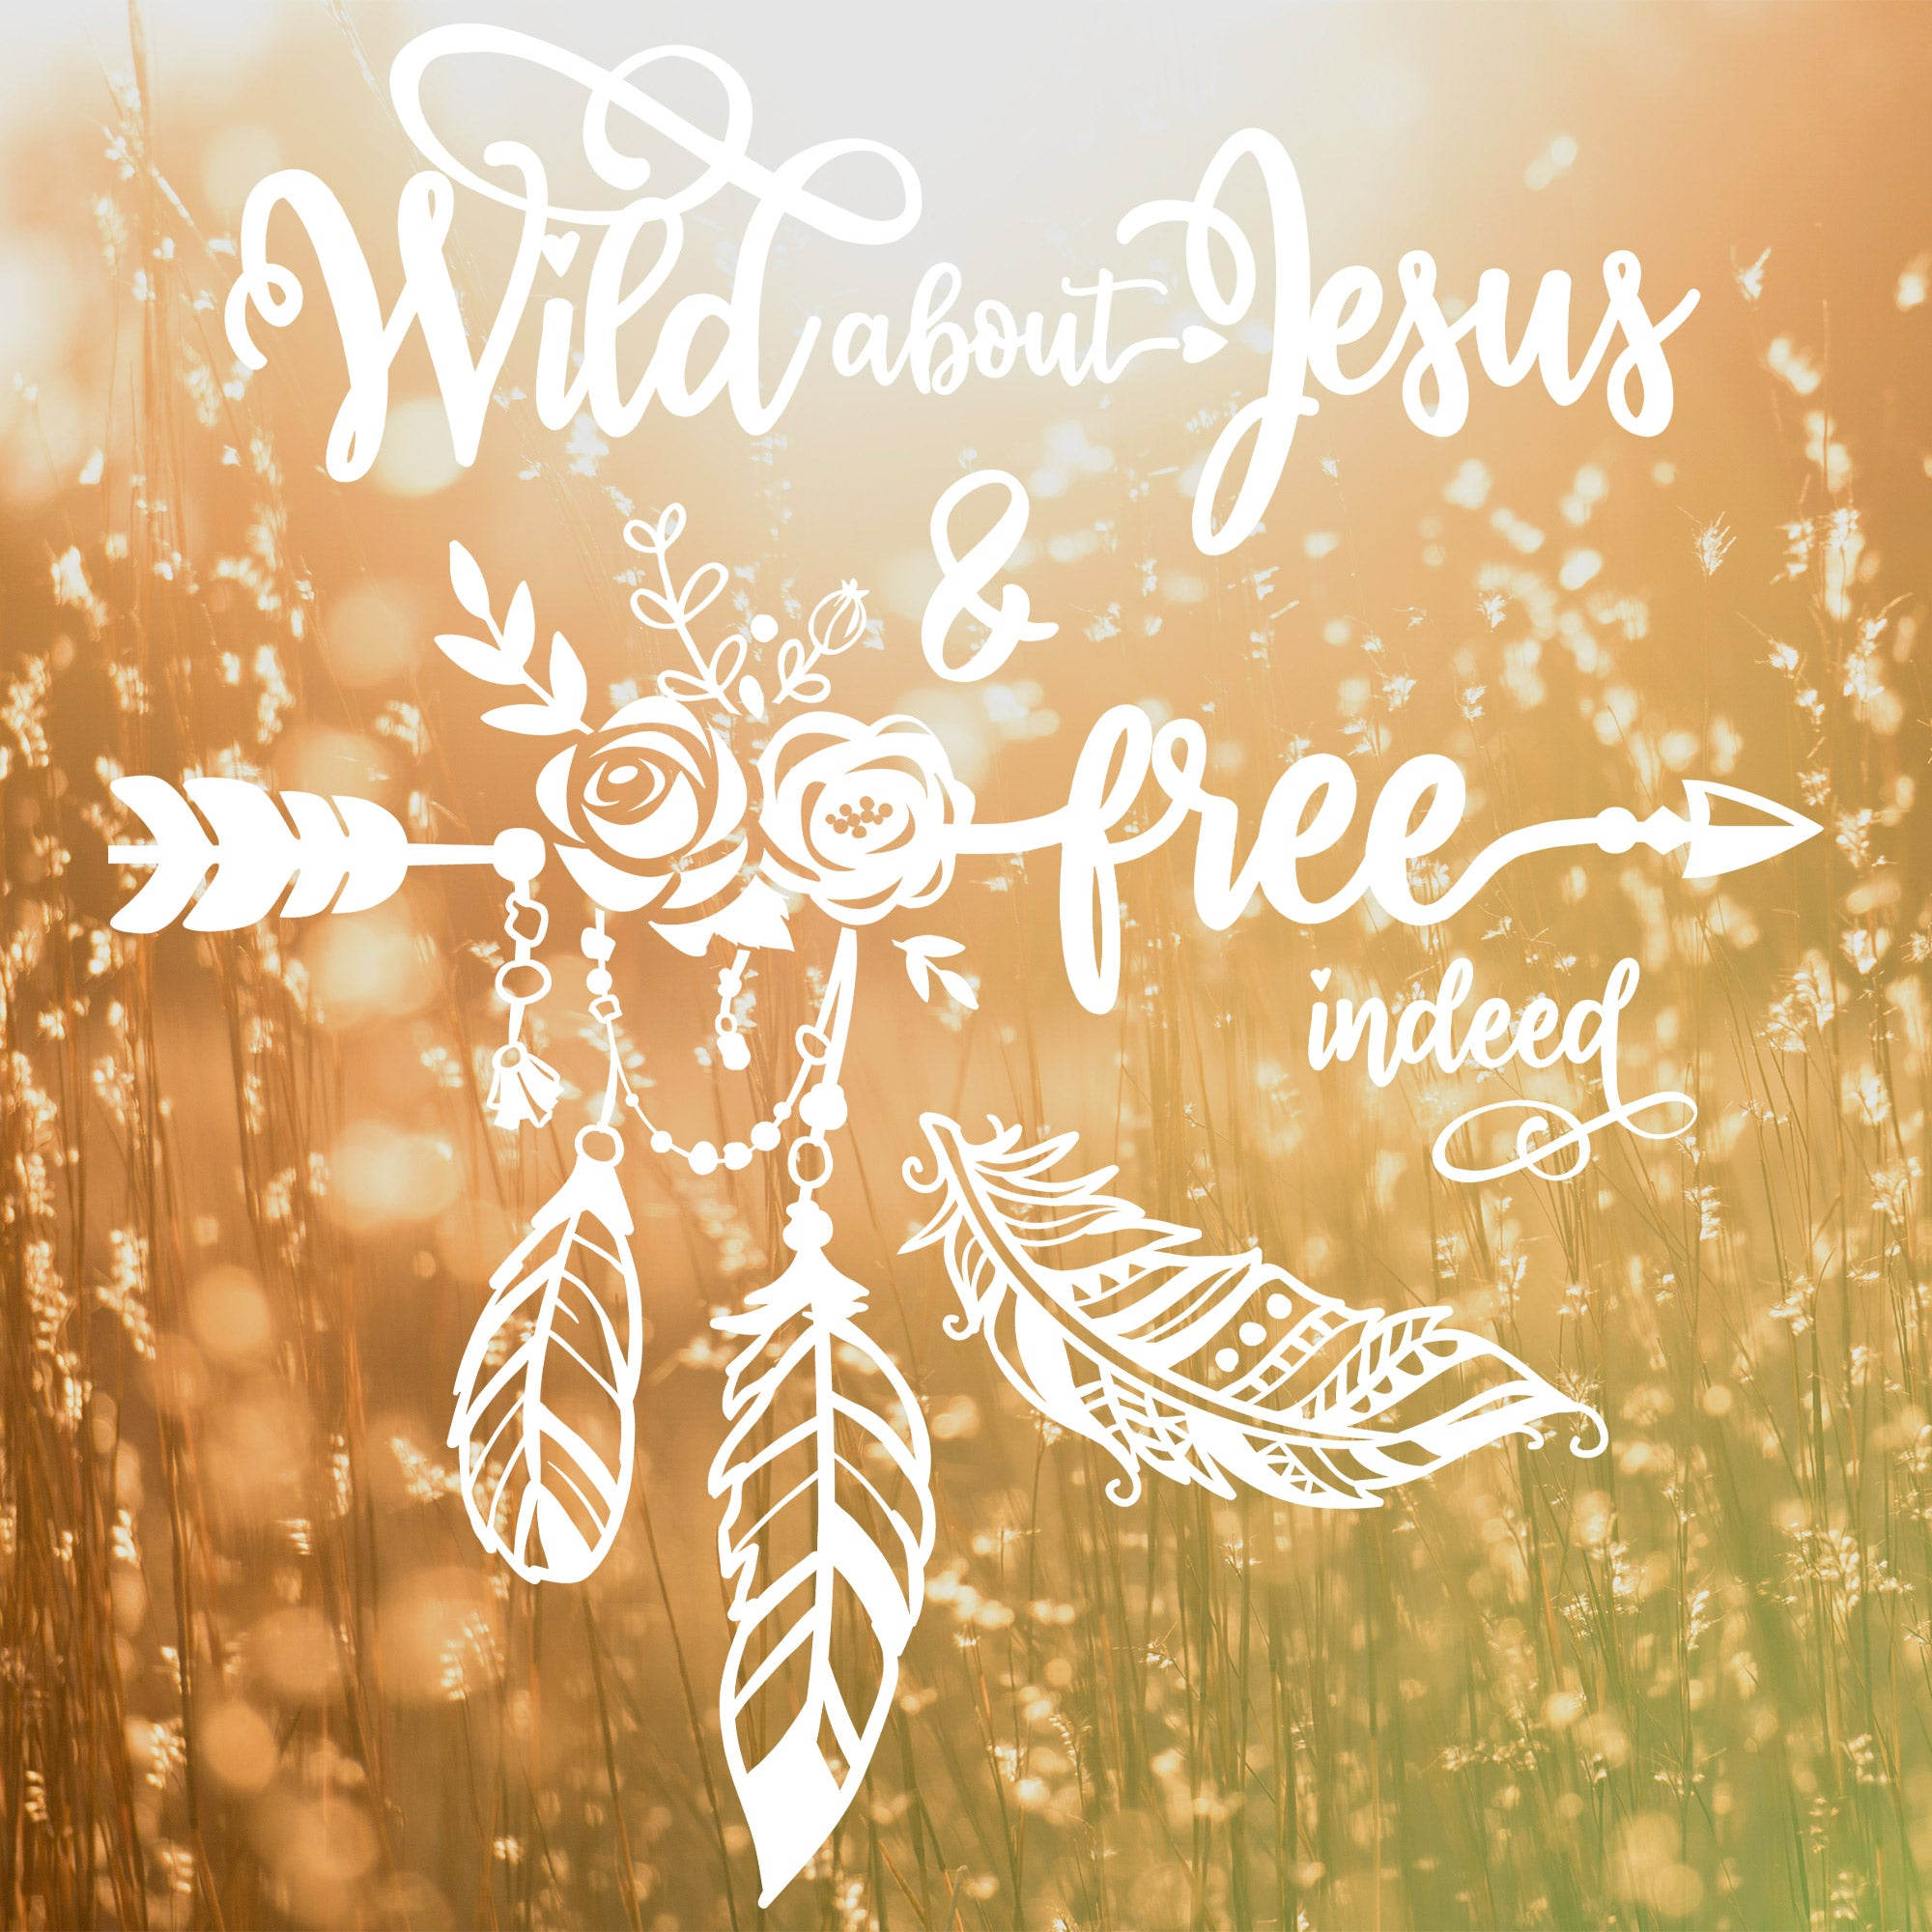 Boho Wild About Jesus and Free Indeed SVG shown over a sun washed field